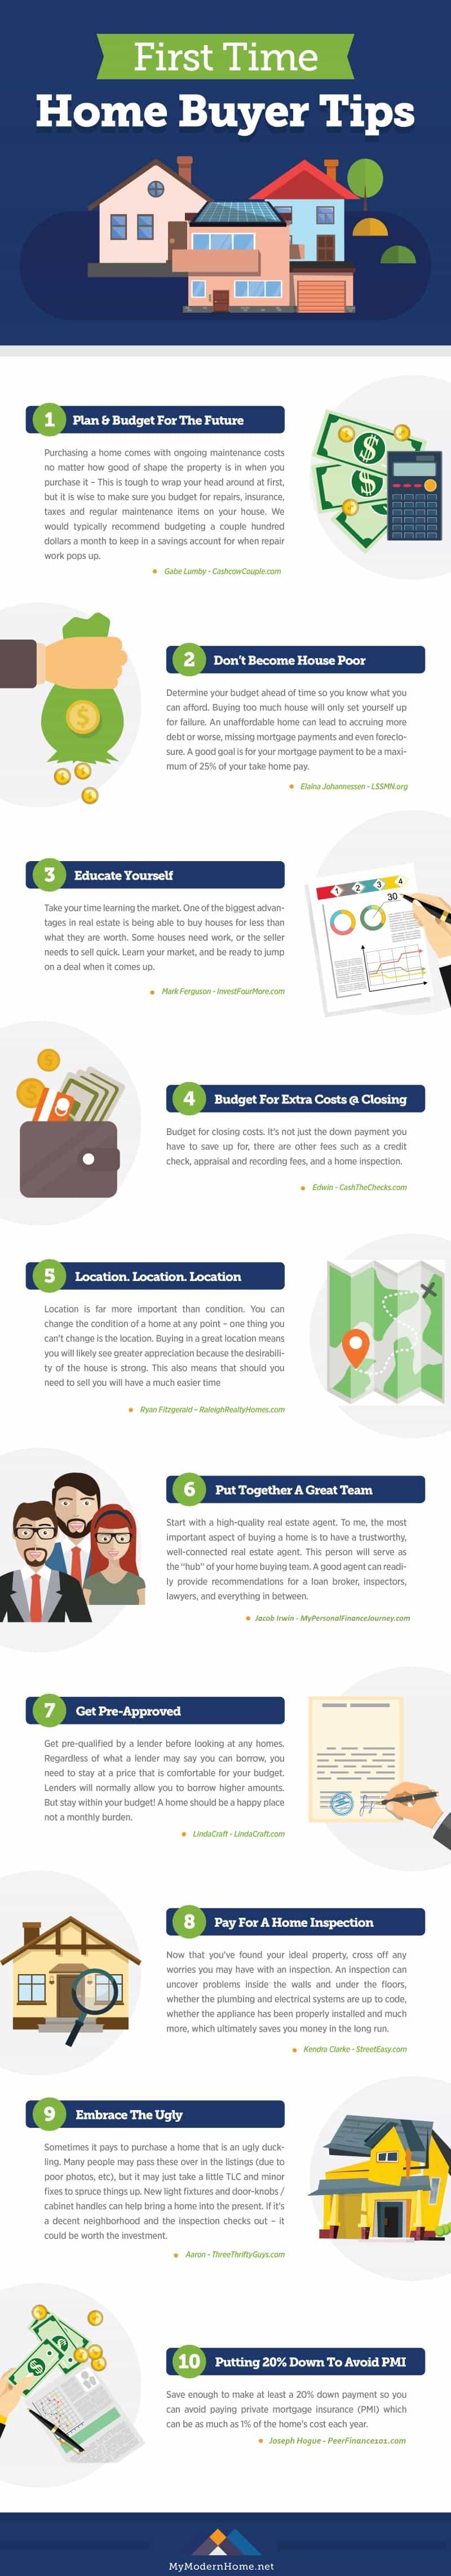 10 Buyers Home Time Tips First